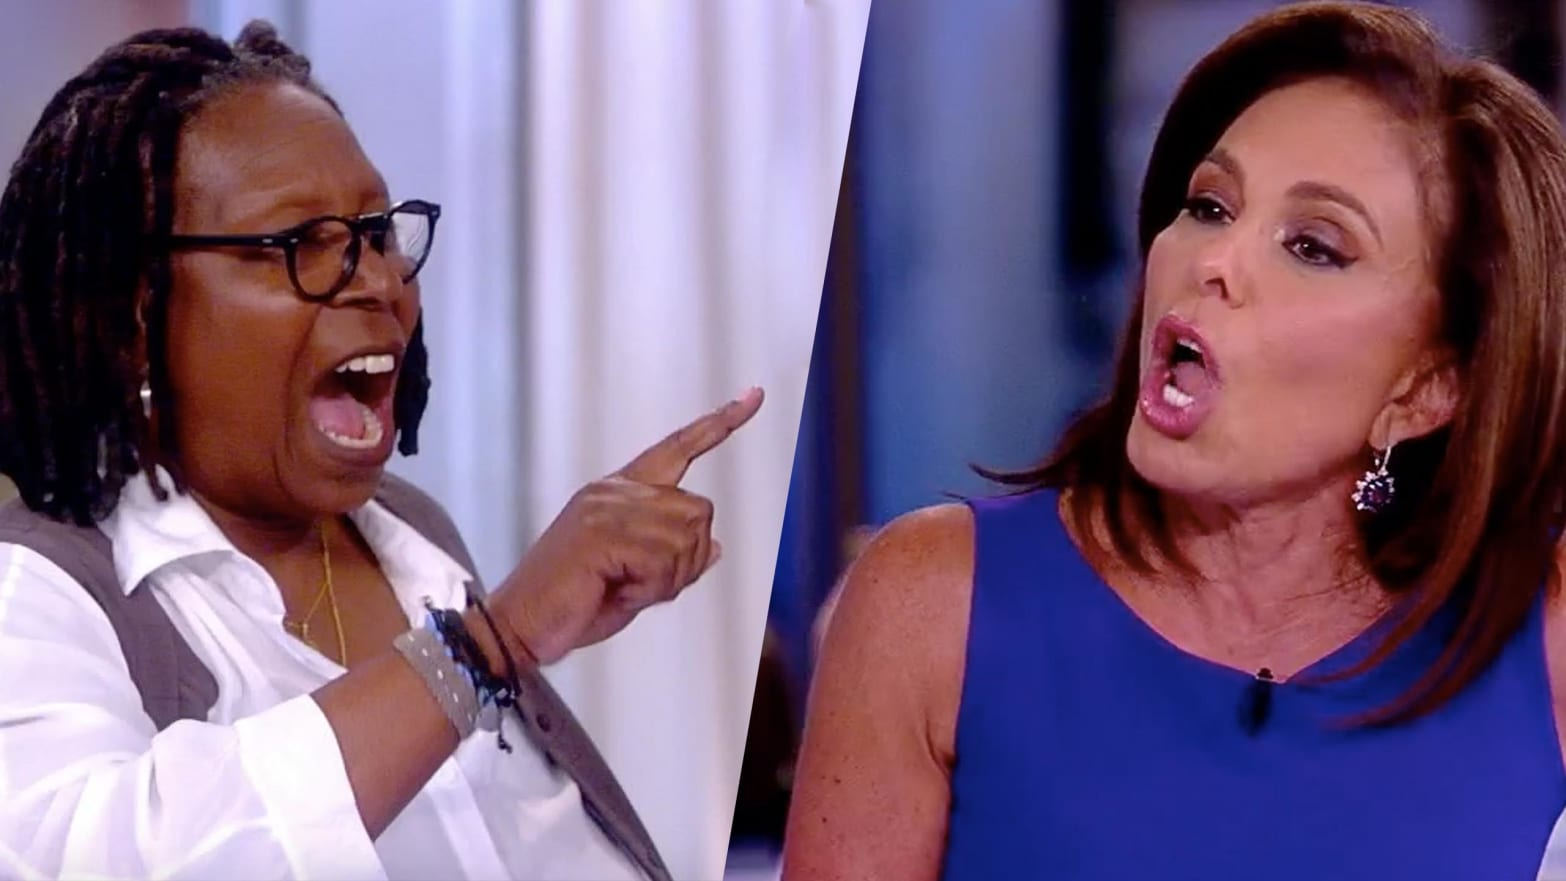 EBL: Whoopi Goldberg wants you to stay out of where?